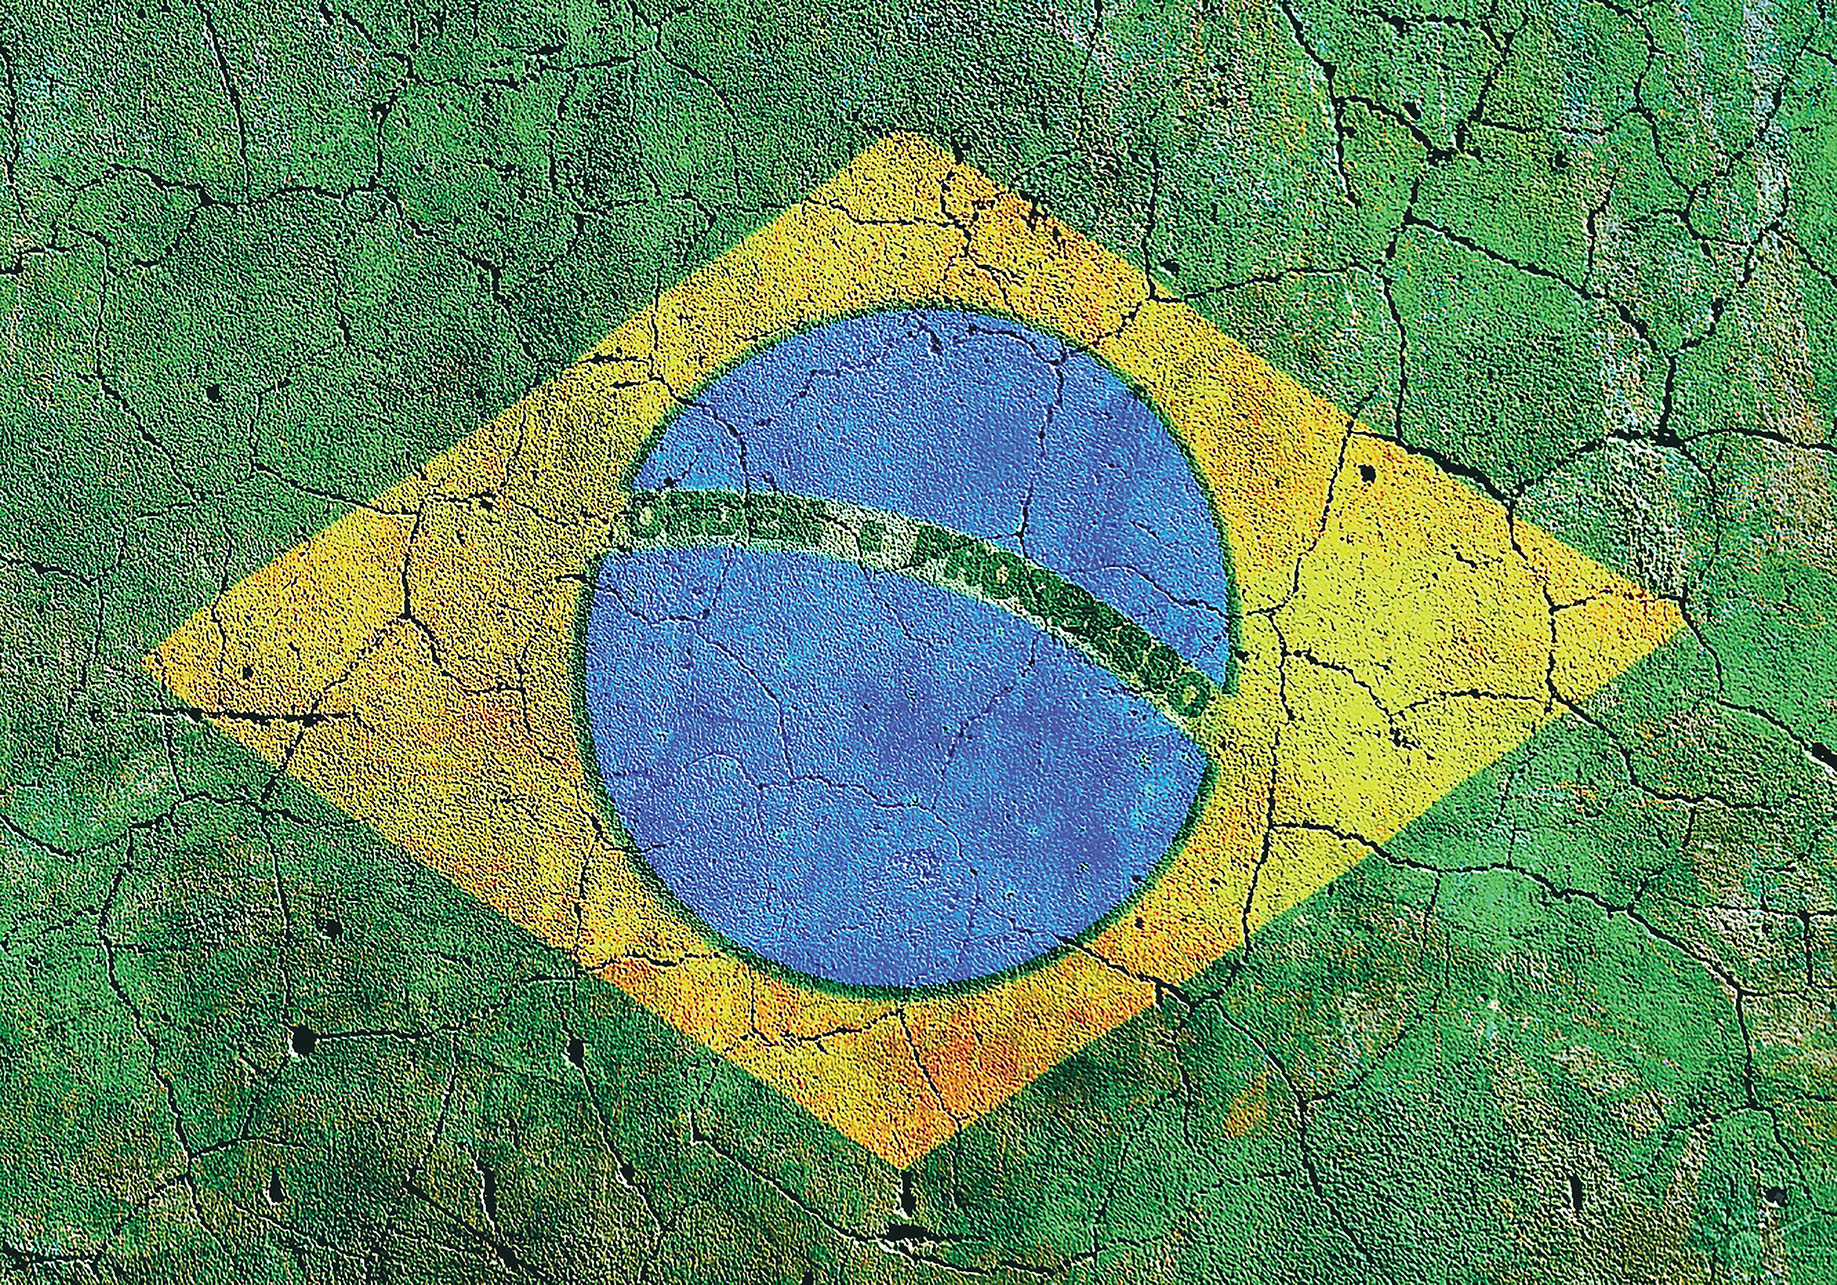 A Brazilian flag painted on a pitted and cracked sidewalk. (Photo by AKRockefeller.)